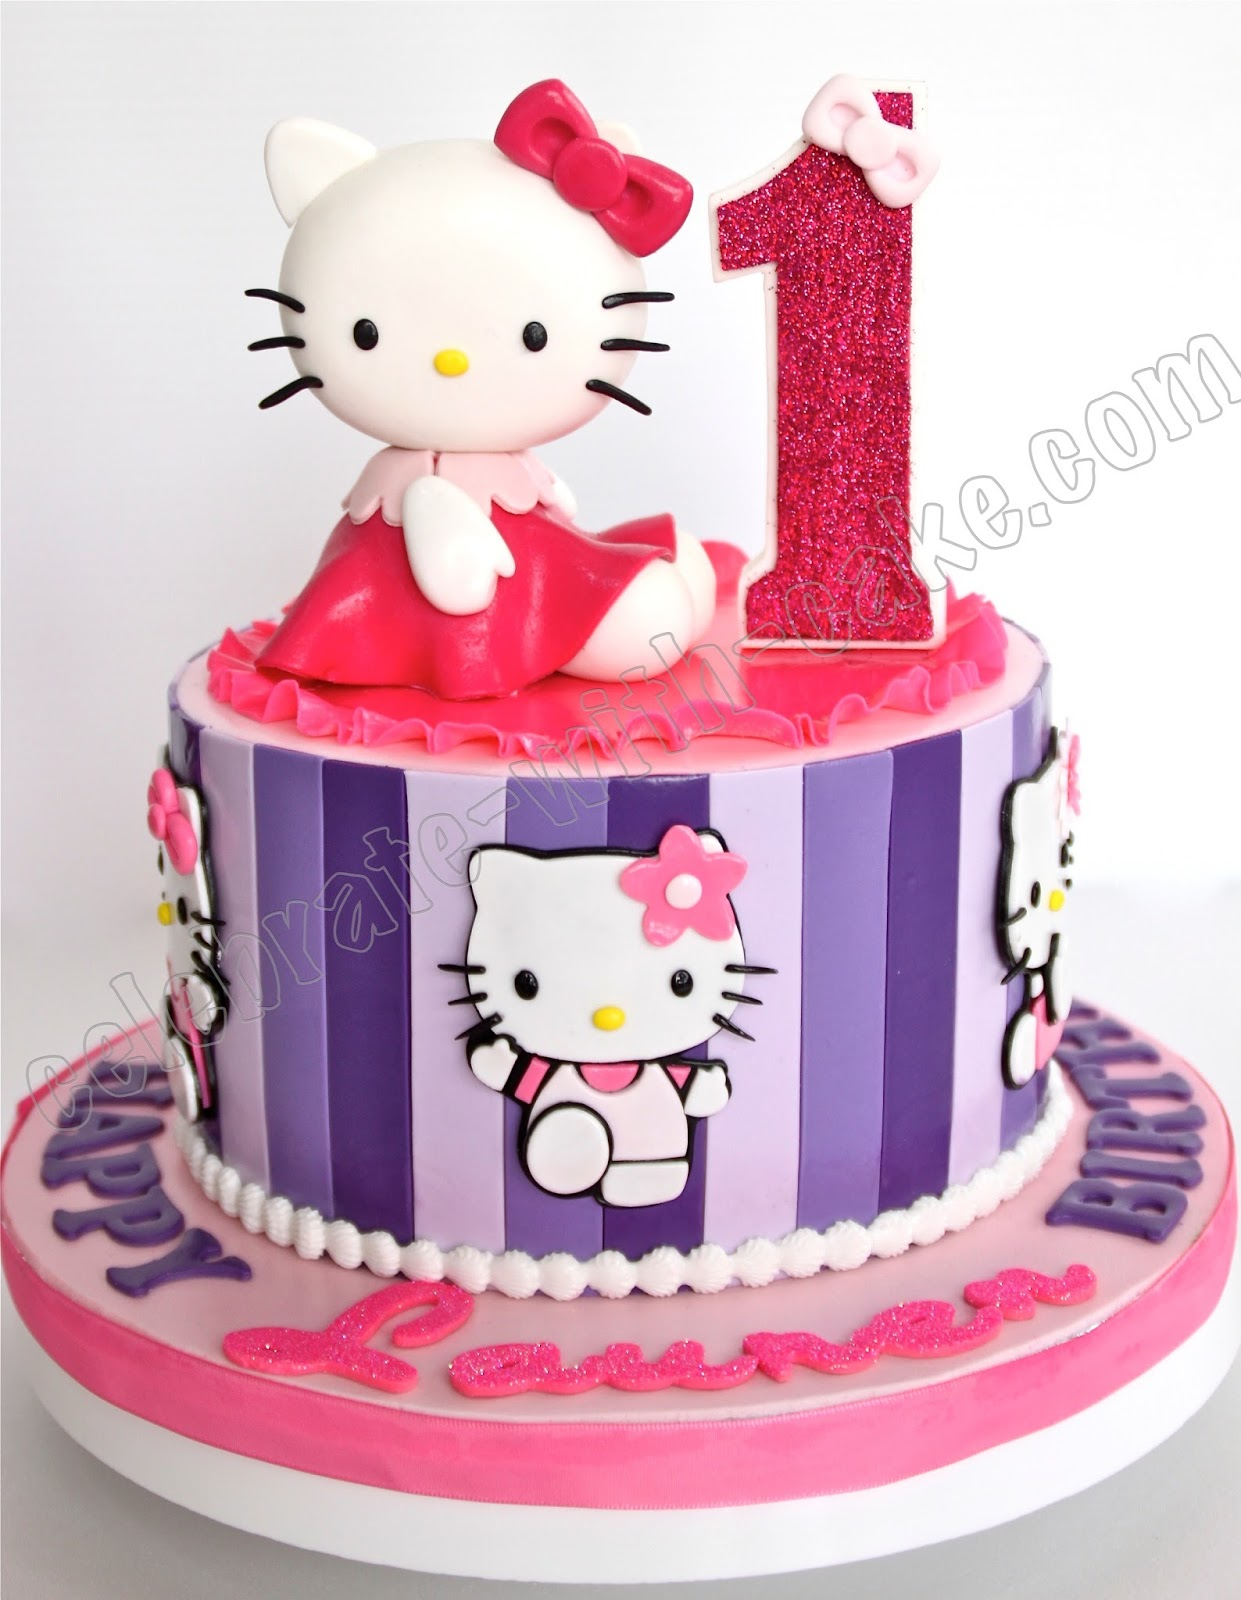 Celebrate With Cake 1st Birthday Hello Kitty Stripes Cake